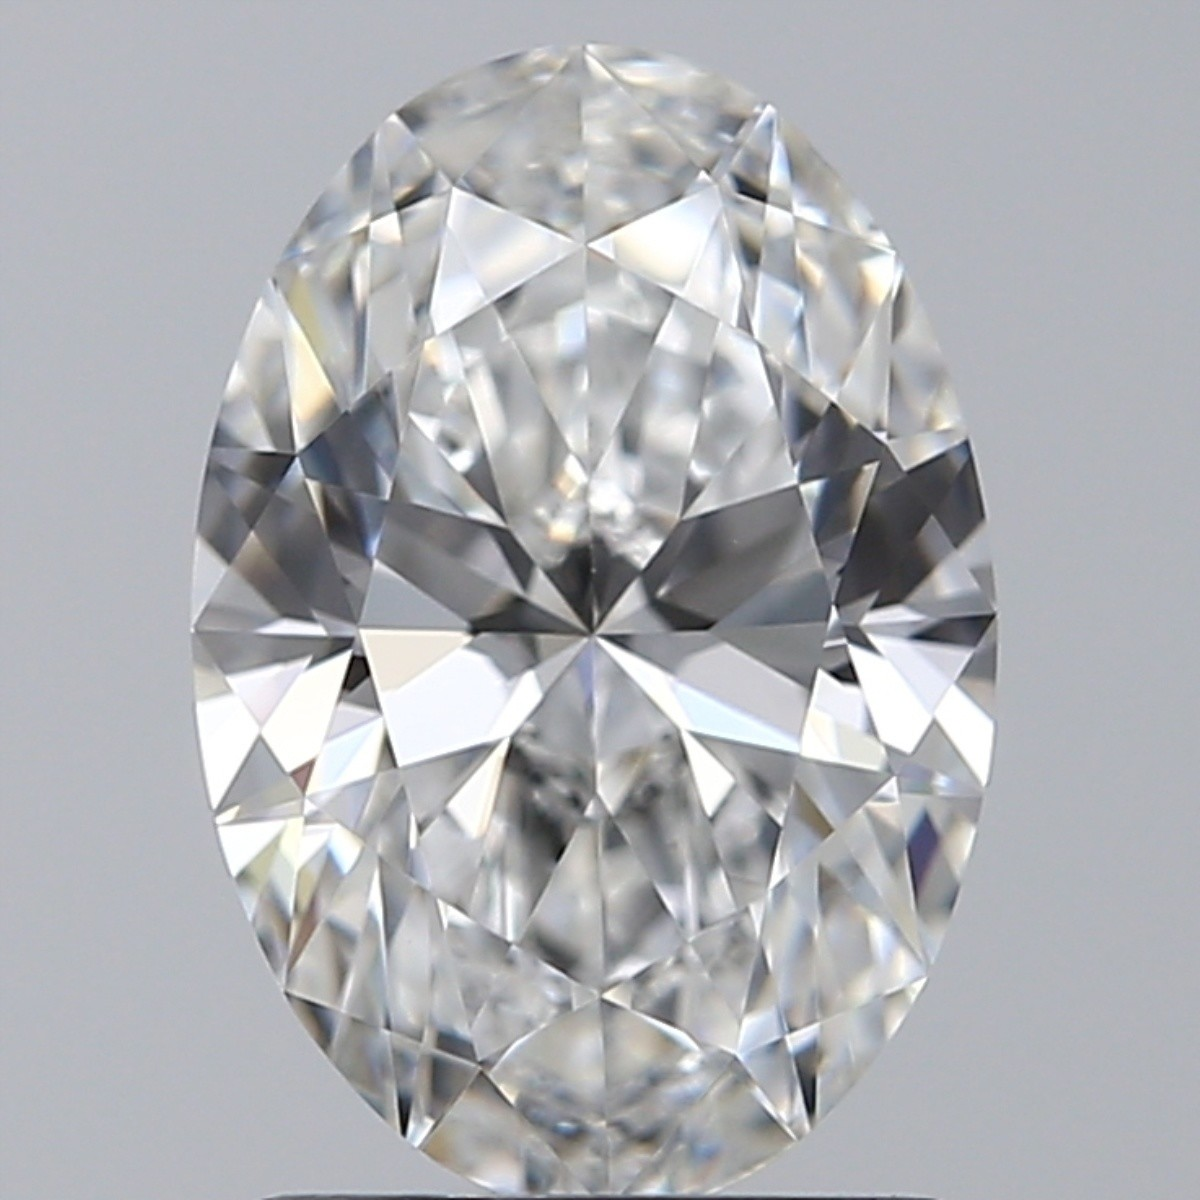 1.52 Carat Oval Diamond (E/VVS2)